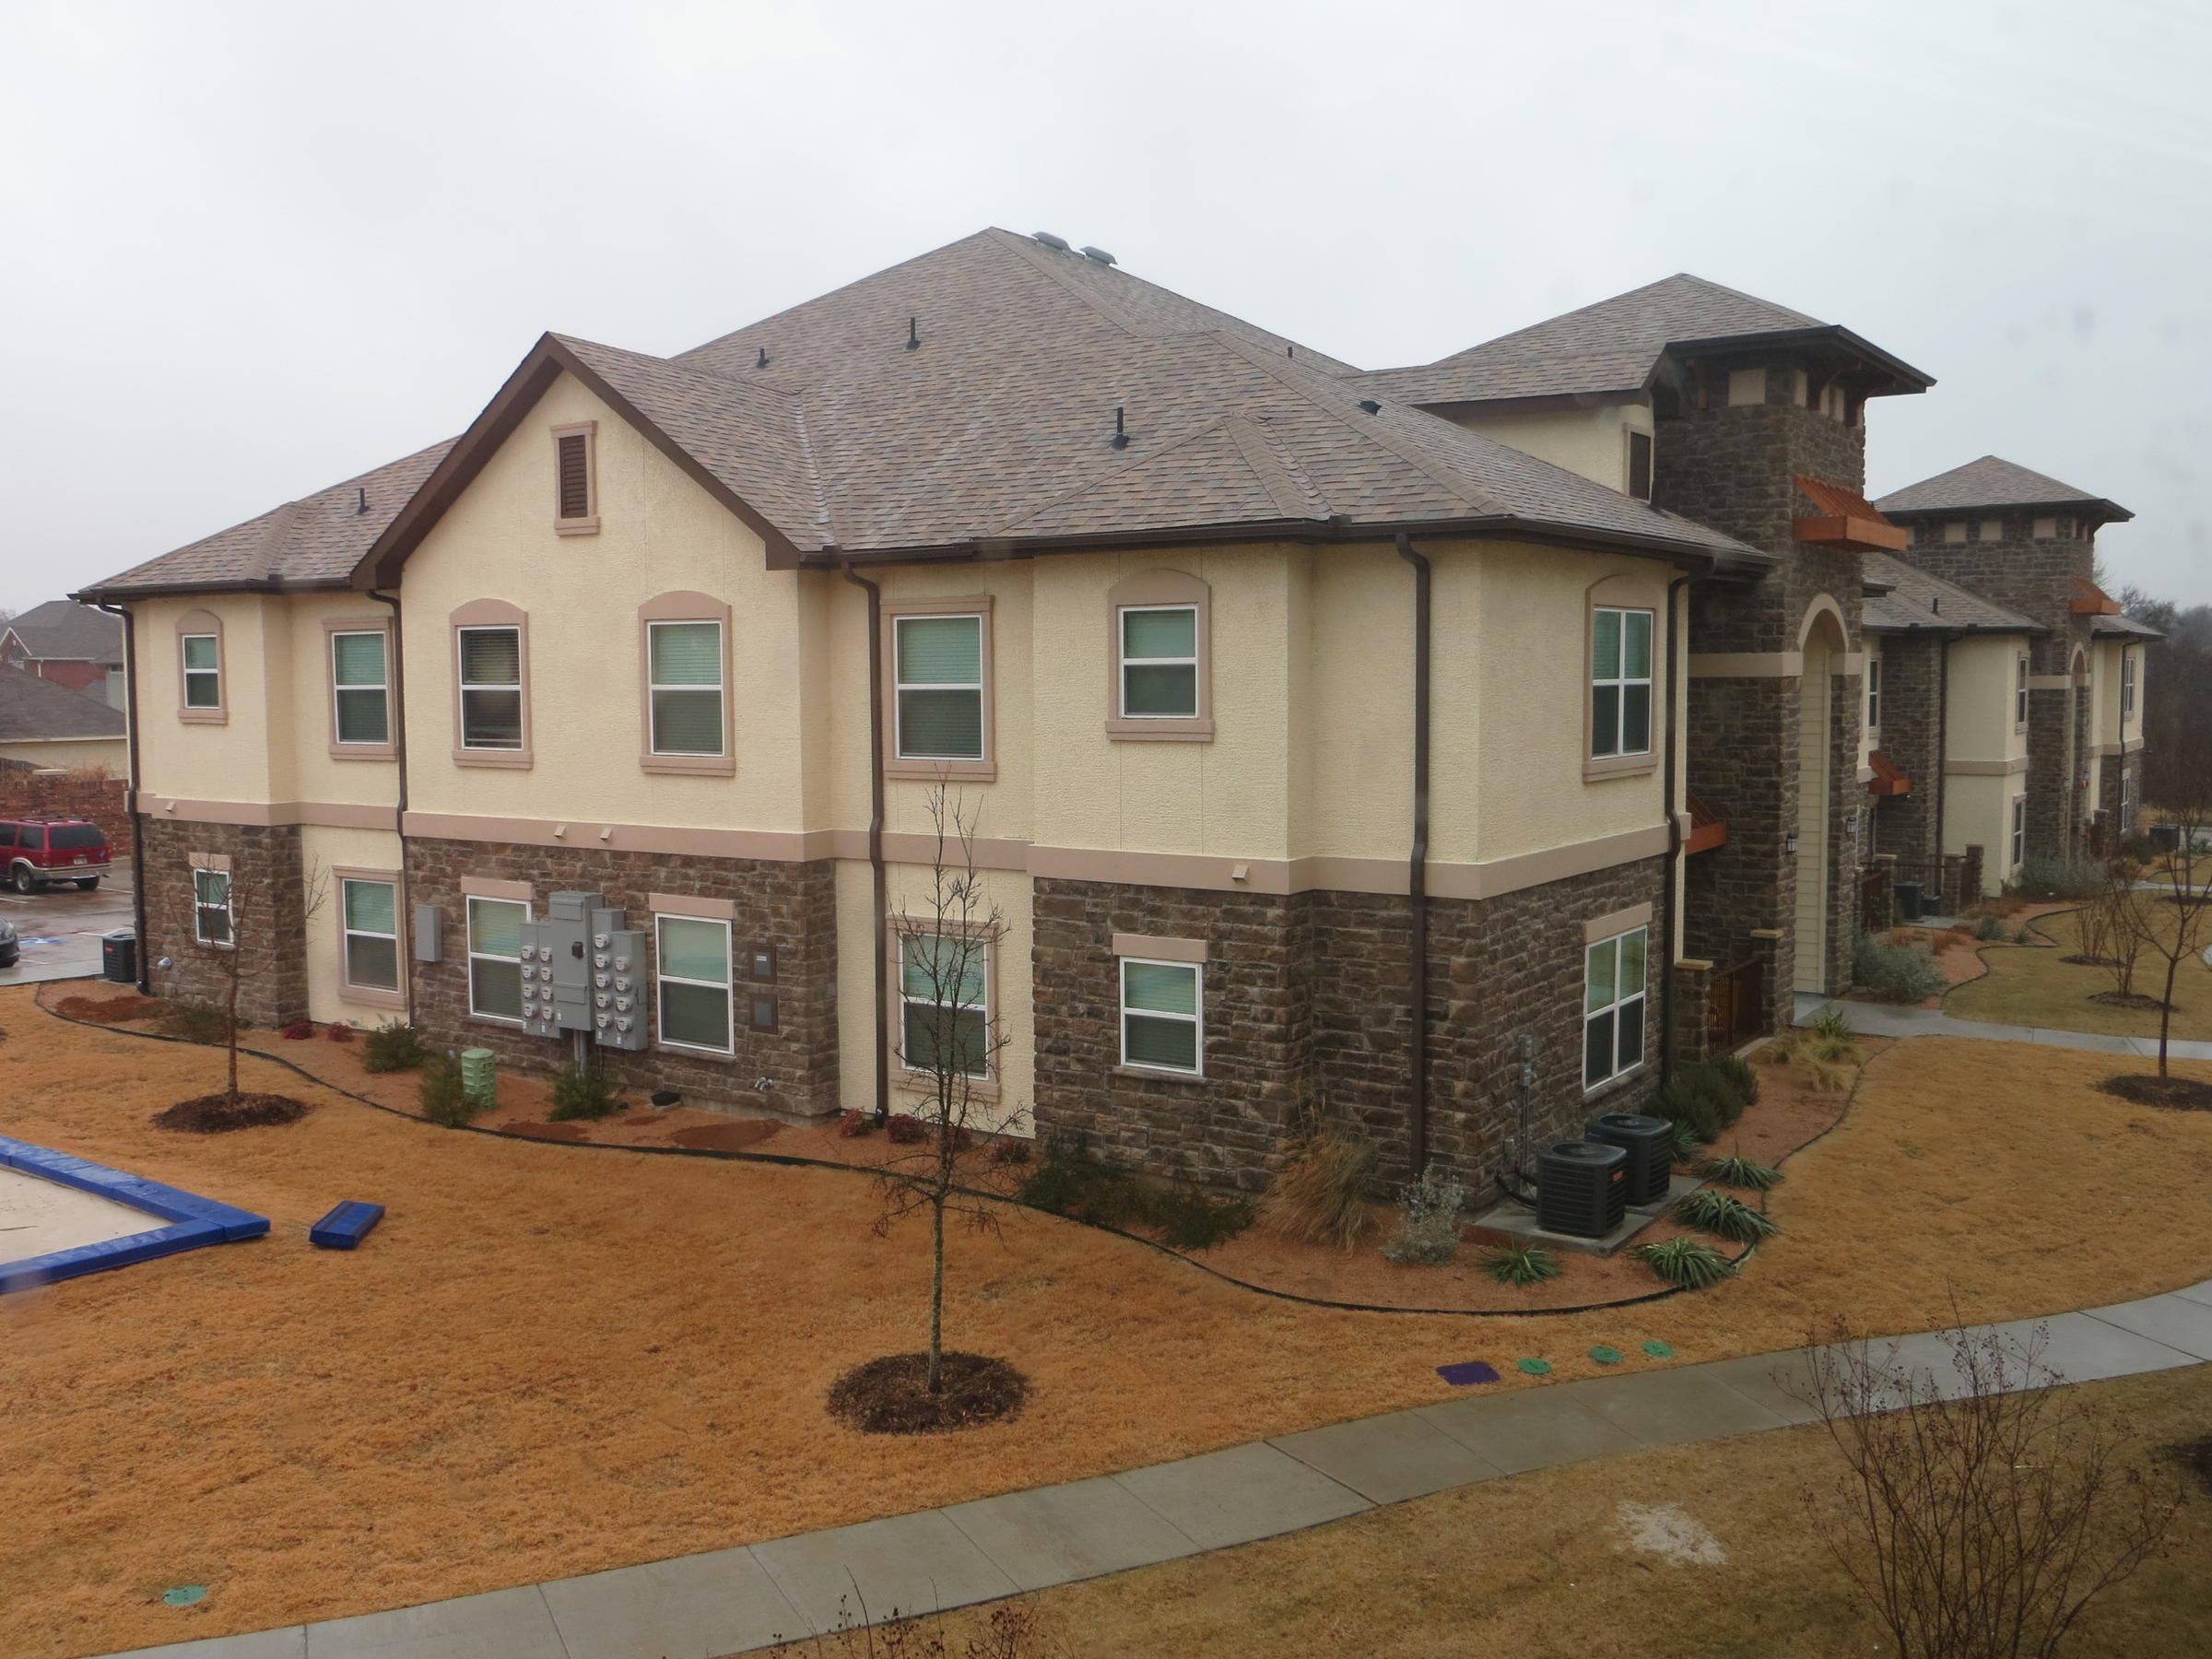 North Court Villas In Frisco, An Affordable Housing Development, Is So  Popular It Has A Waiting List Of 500 People.